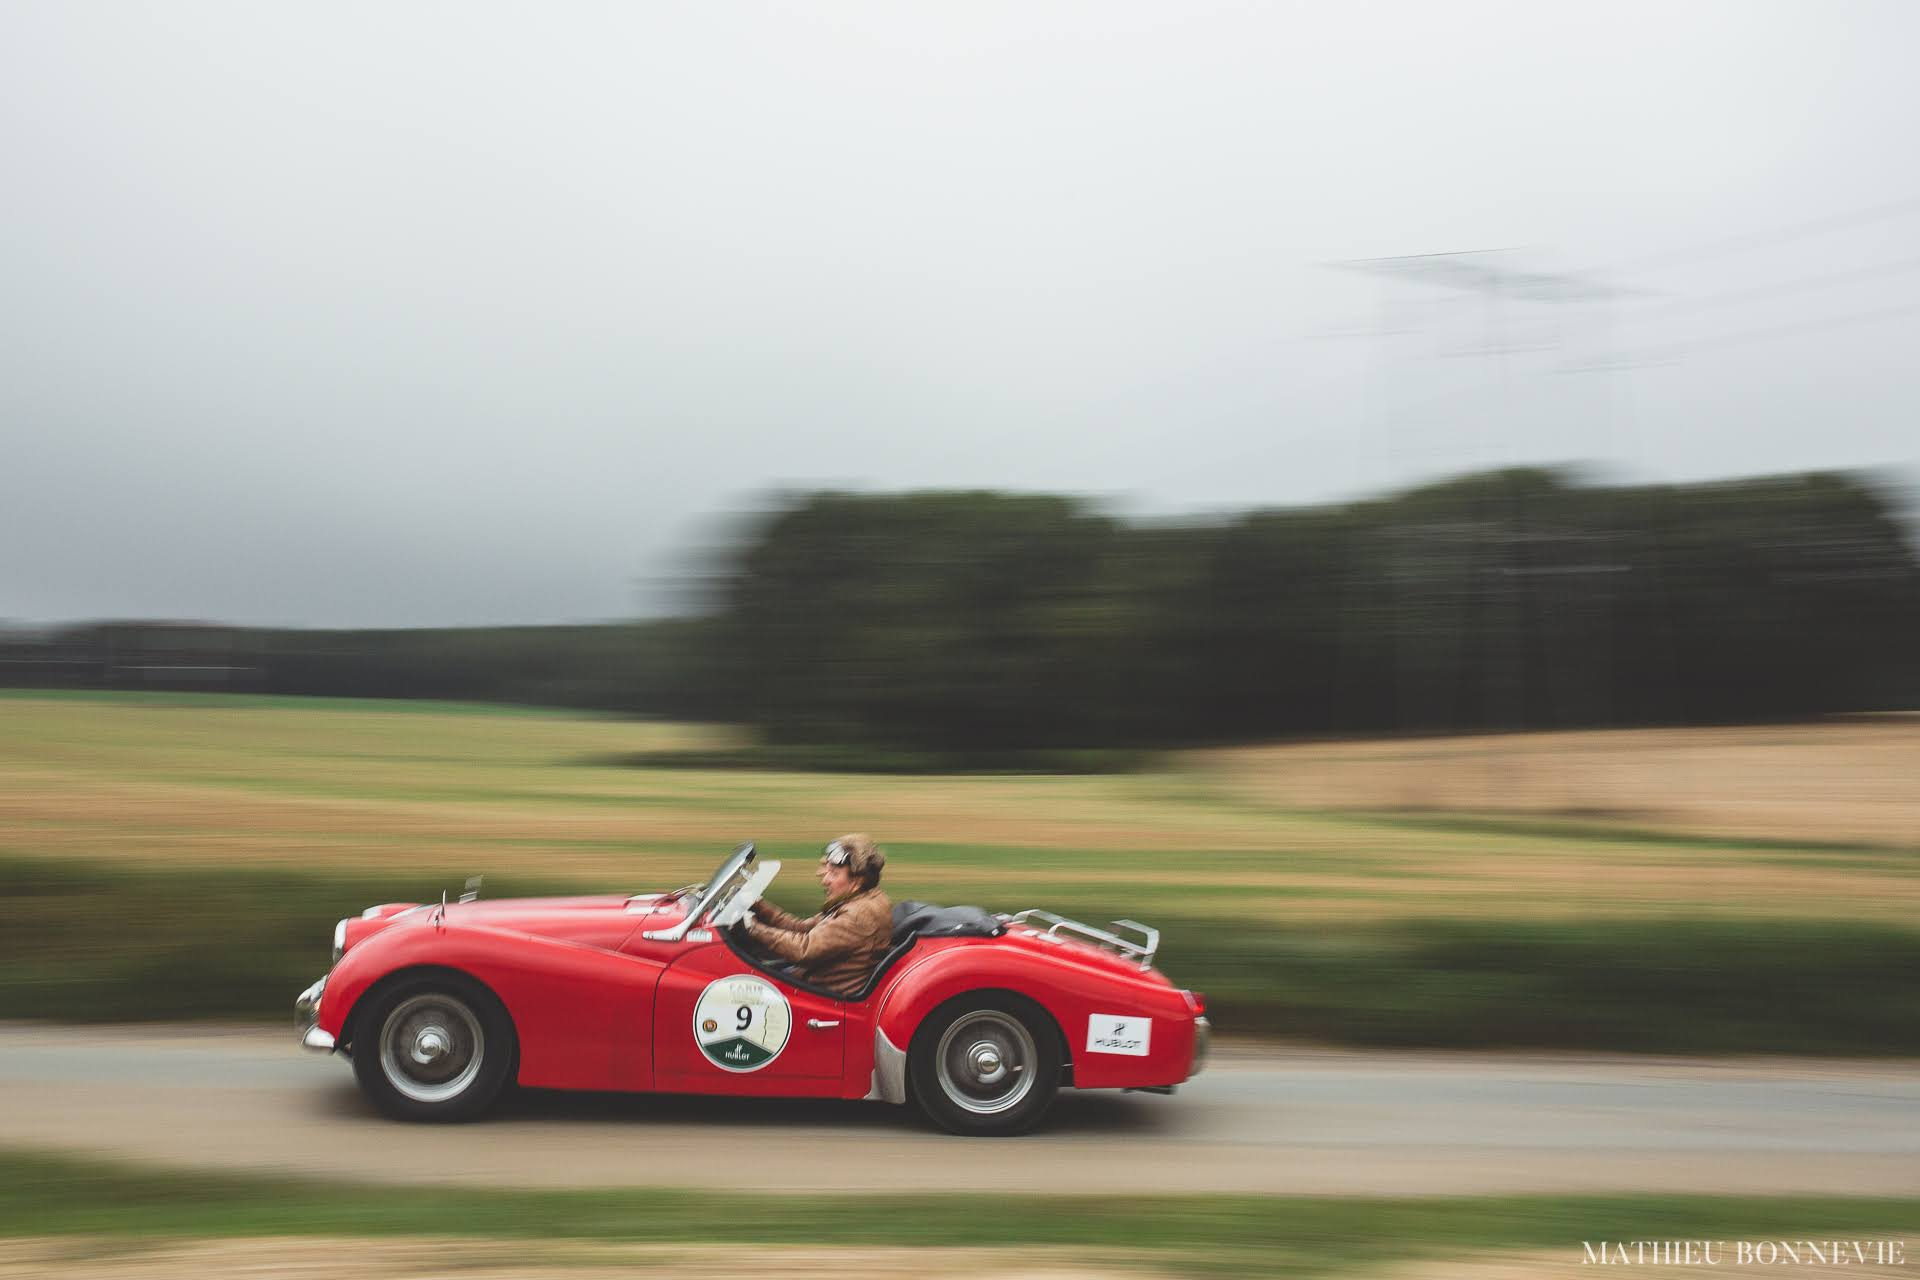 109-goodwoodrevival18-00622-copyright-Mathieu-Bonnevie-1920